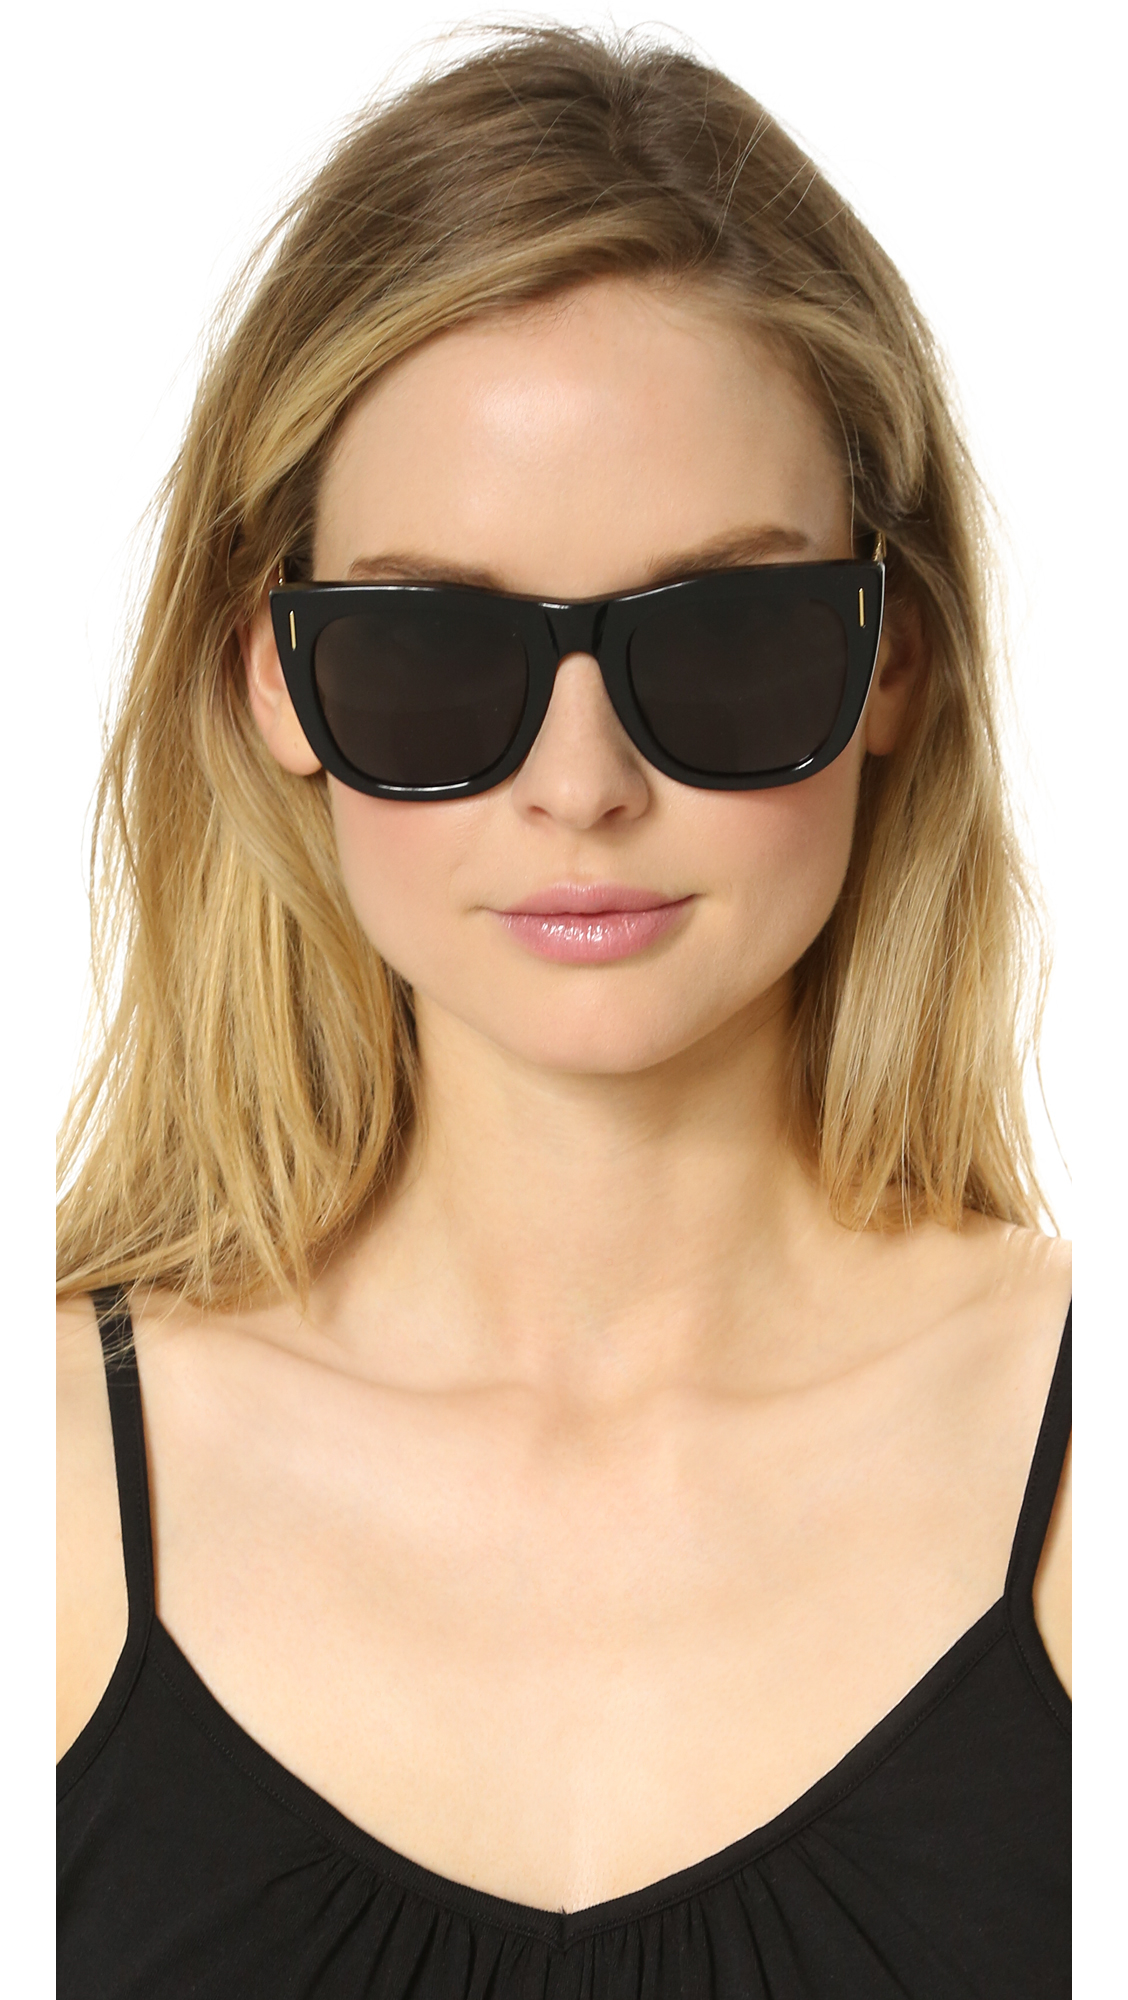 Cheap Wholesale Free Shipping Top Quality Retrosuperfuture 'Gals Francis Goffrato' sunglasses Amazon Footaction Release Dates For Sale Free Shipping Cheapest Price 5Jogkt